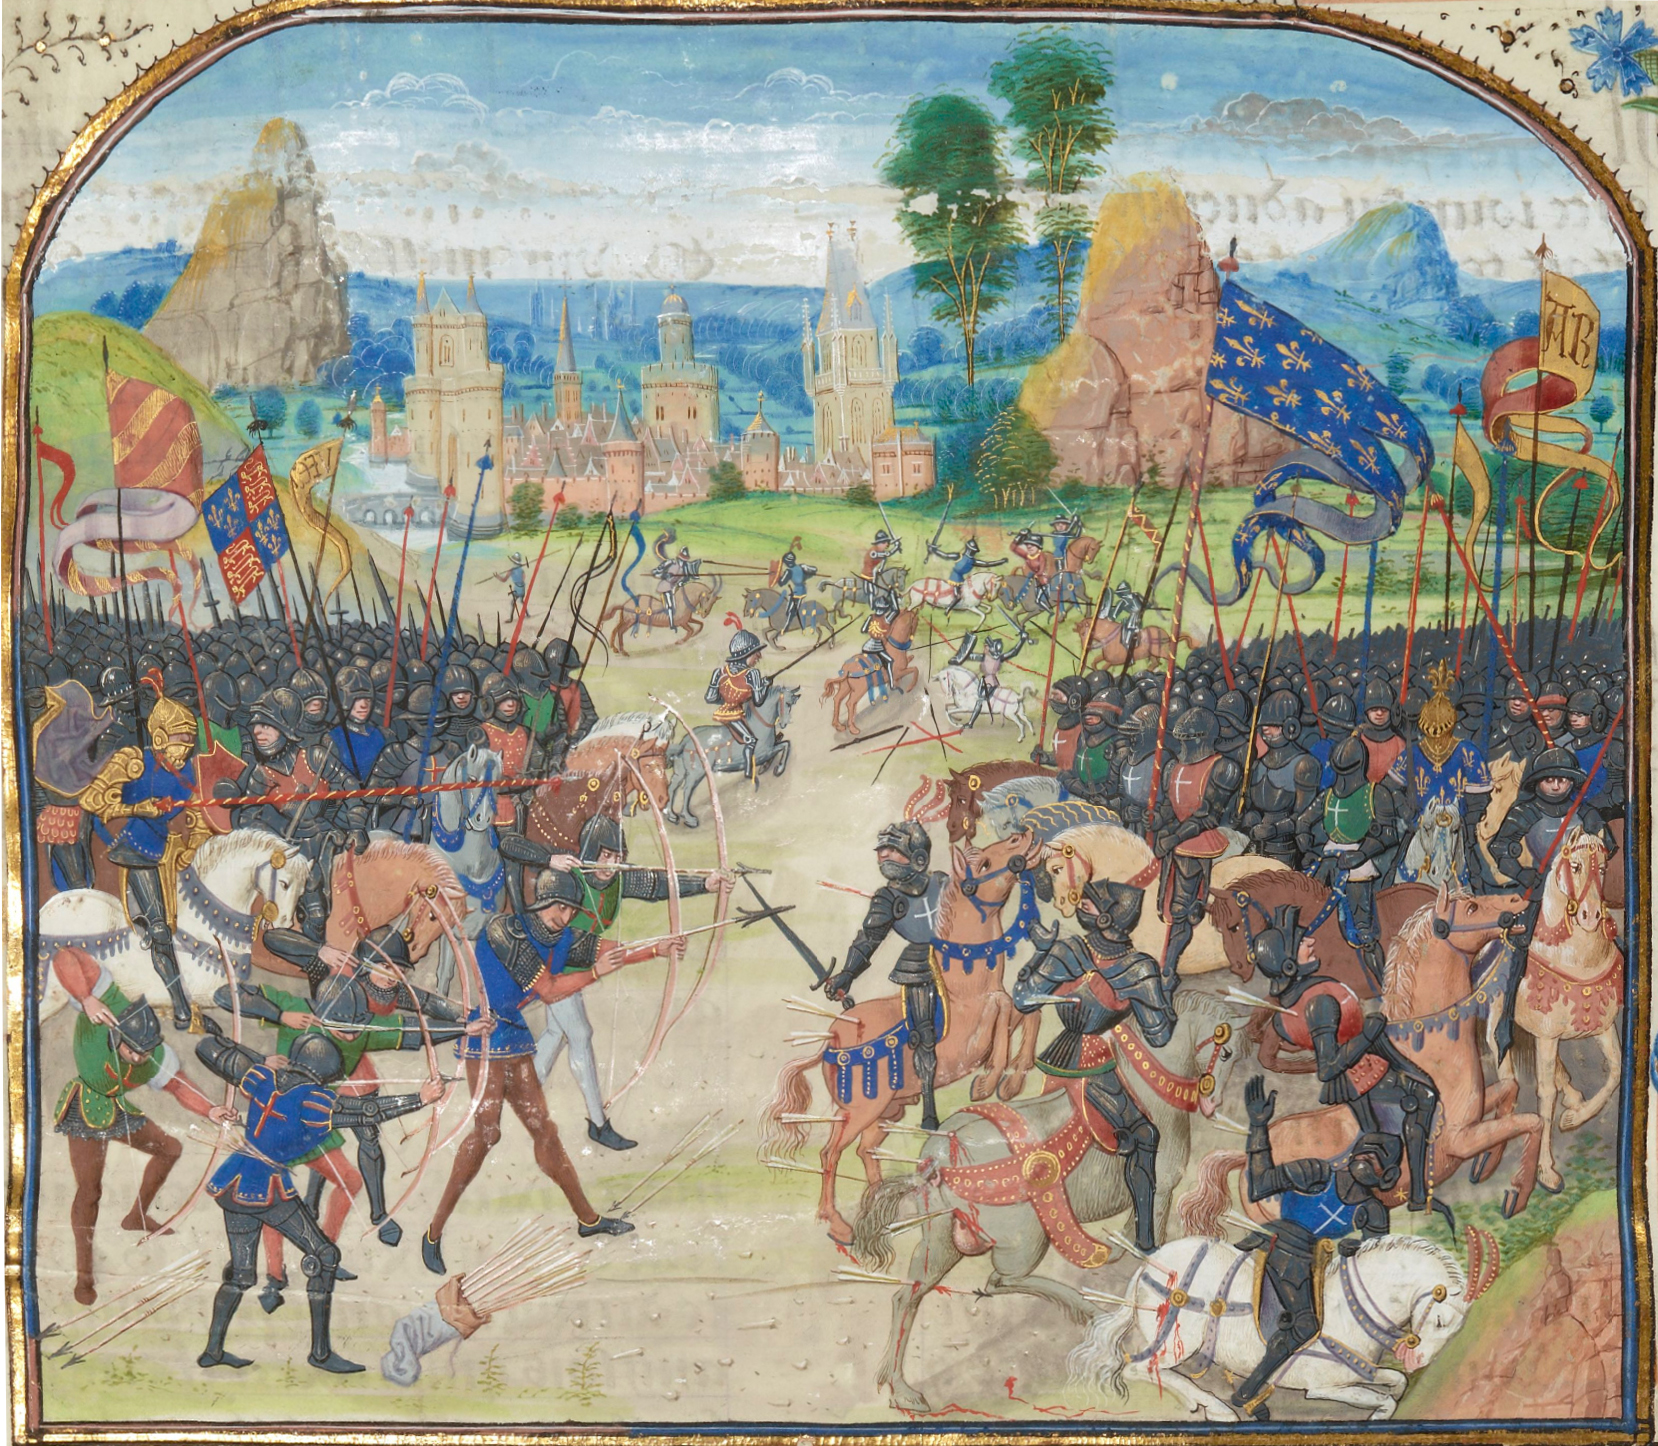 File:Battle-poitiers(1356).jpg